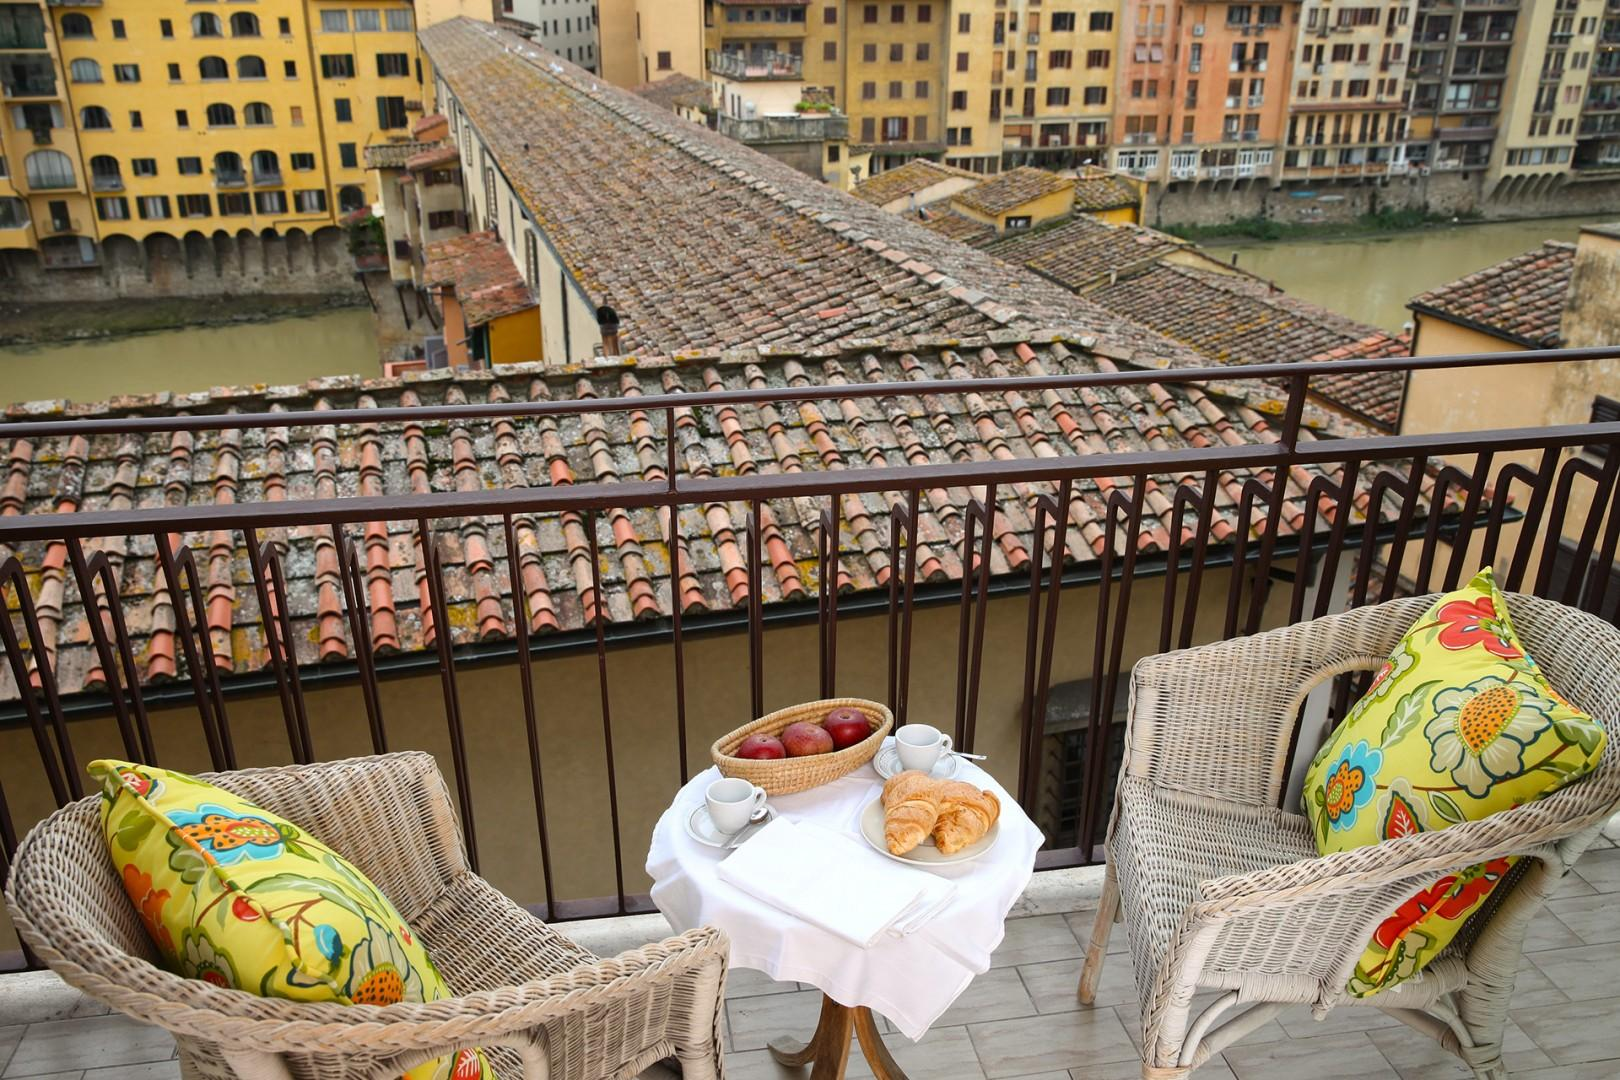 This will be your view standing on the terrace, the Ponte Vecchio is below.